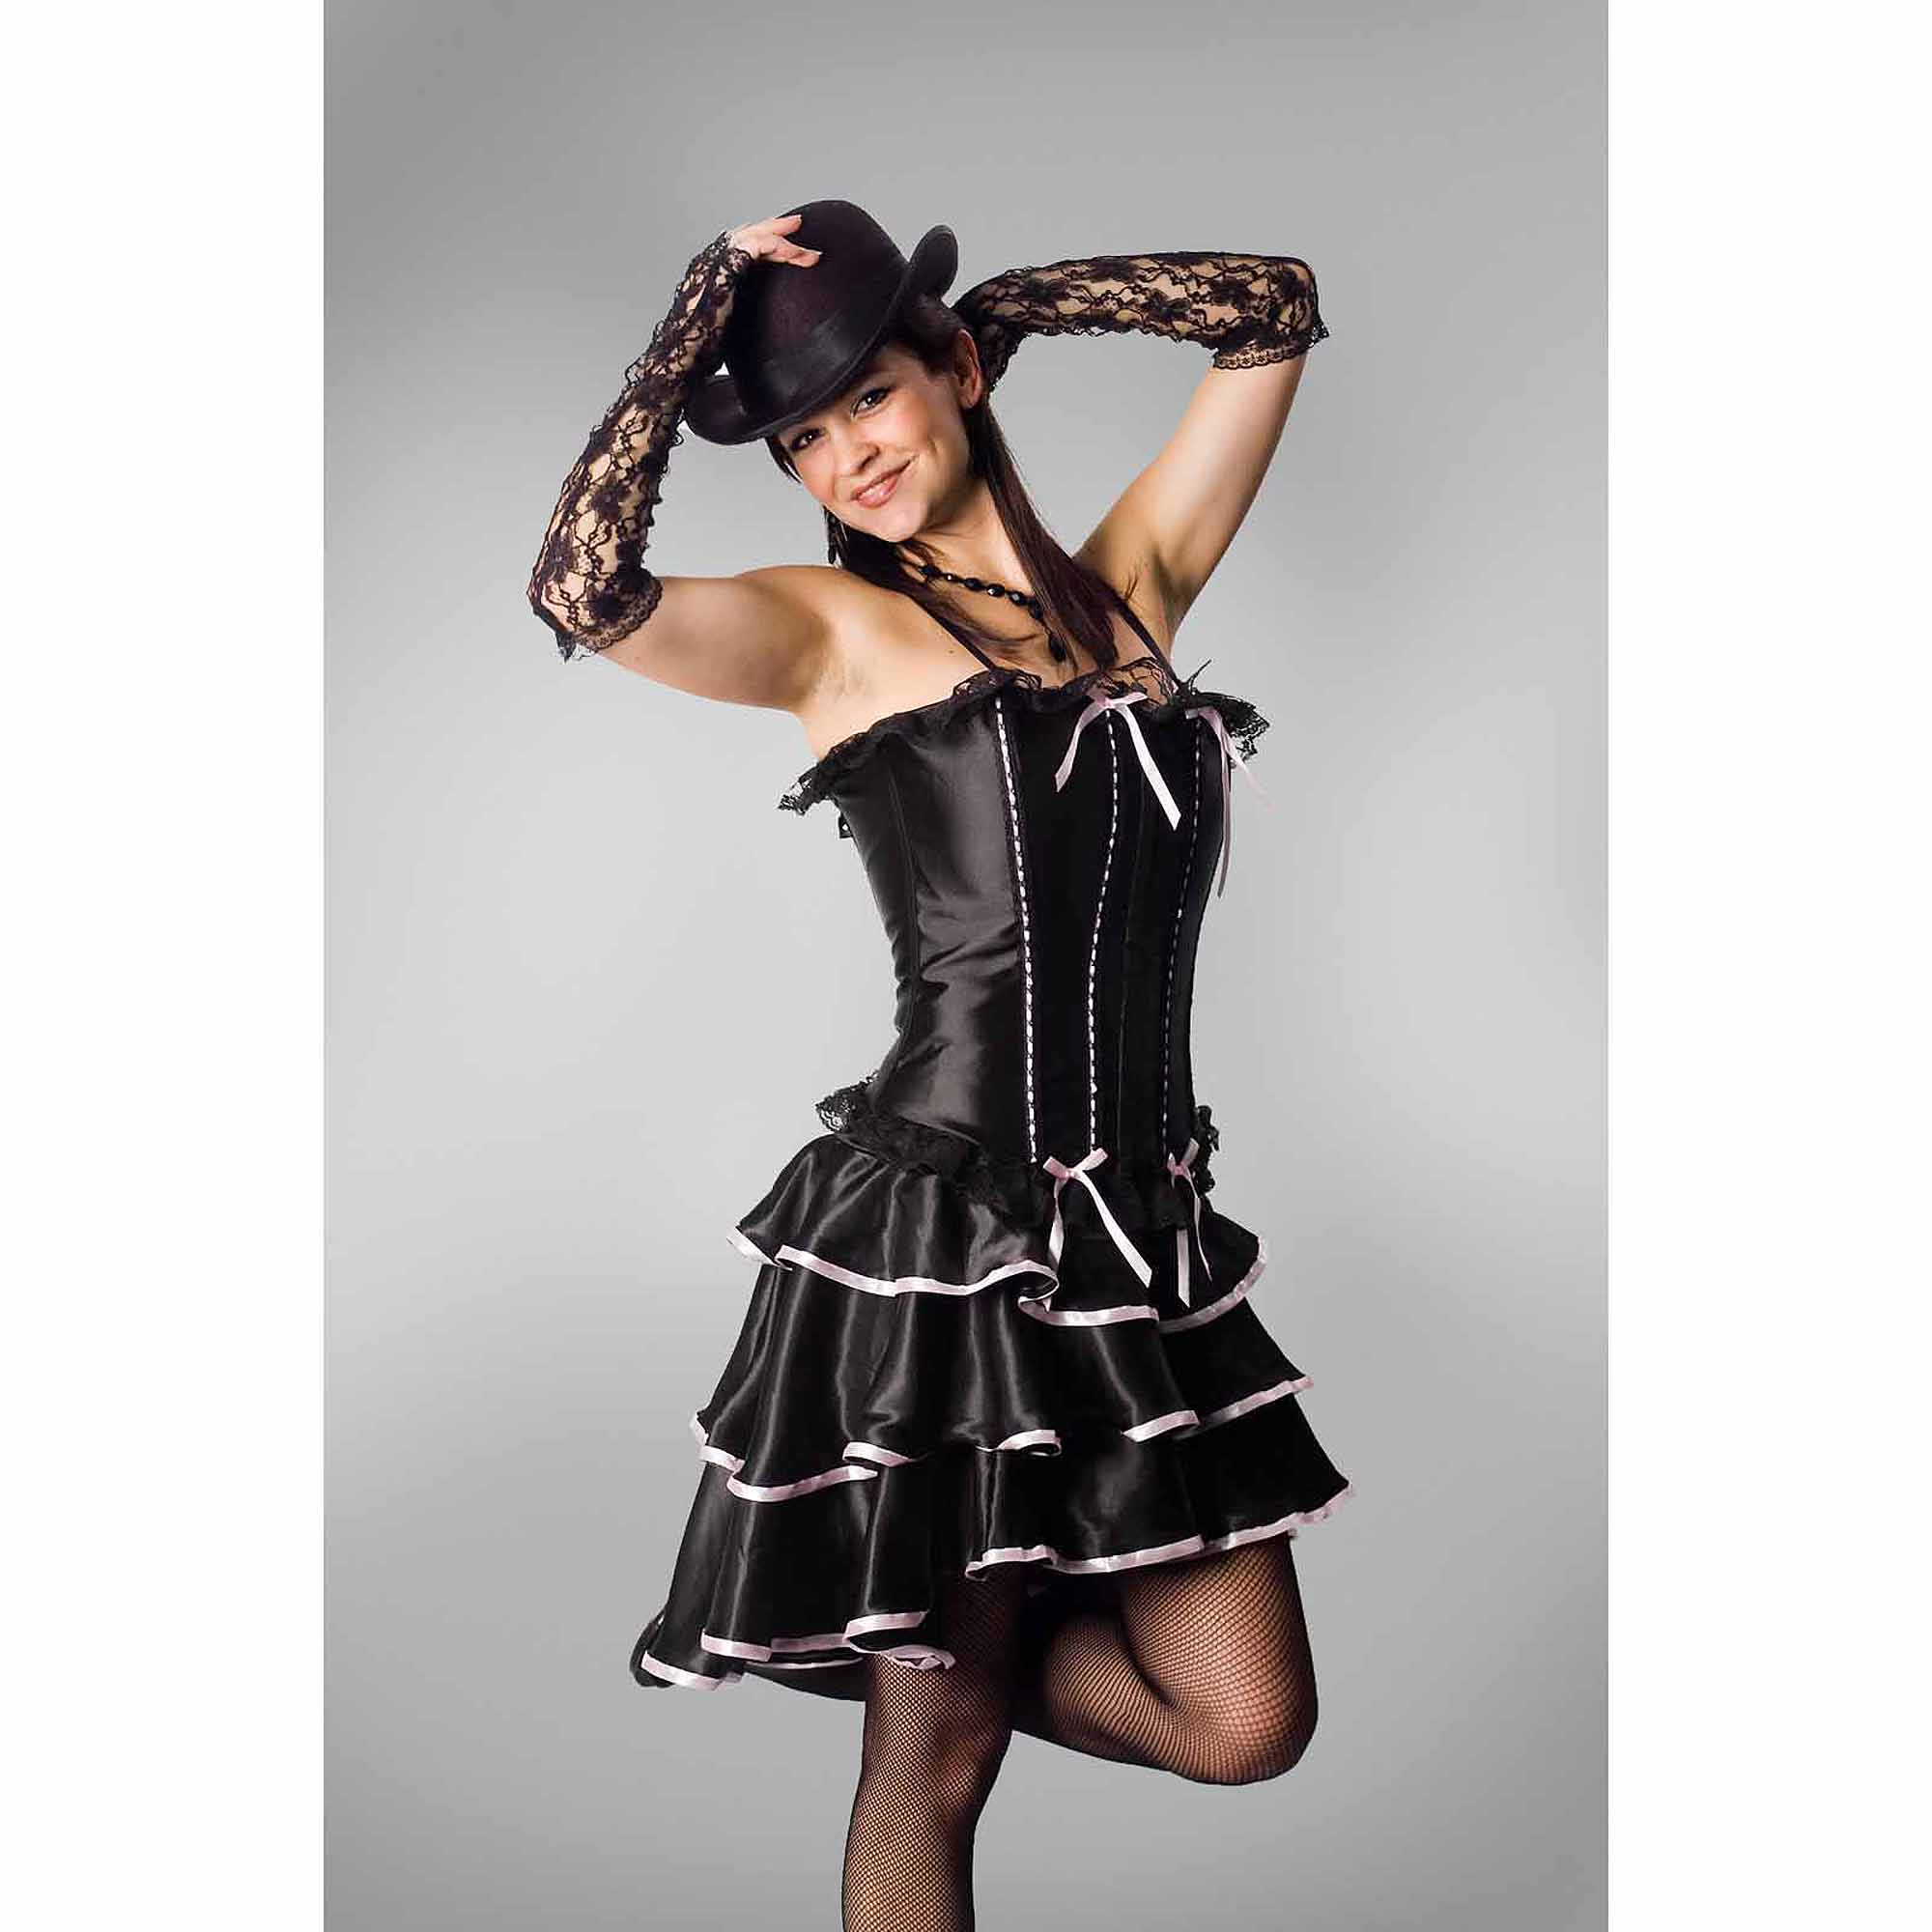 lava diva can can dancer corset womens plus size adult halloween costume walmartcom - Can Can Dancer Halloween Costume